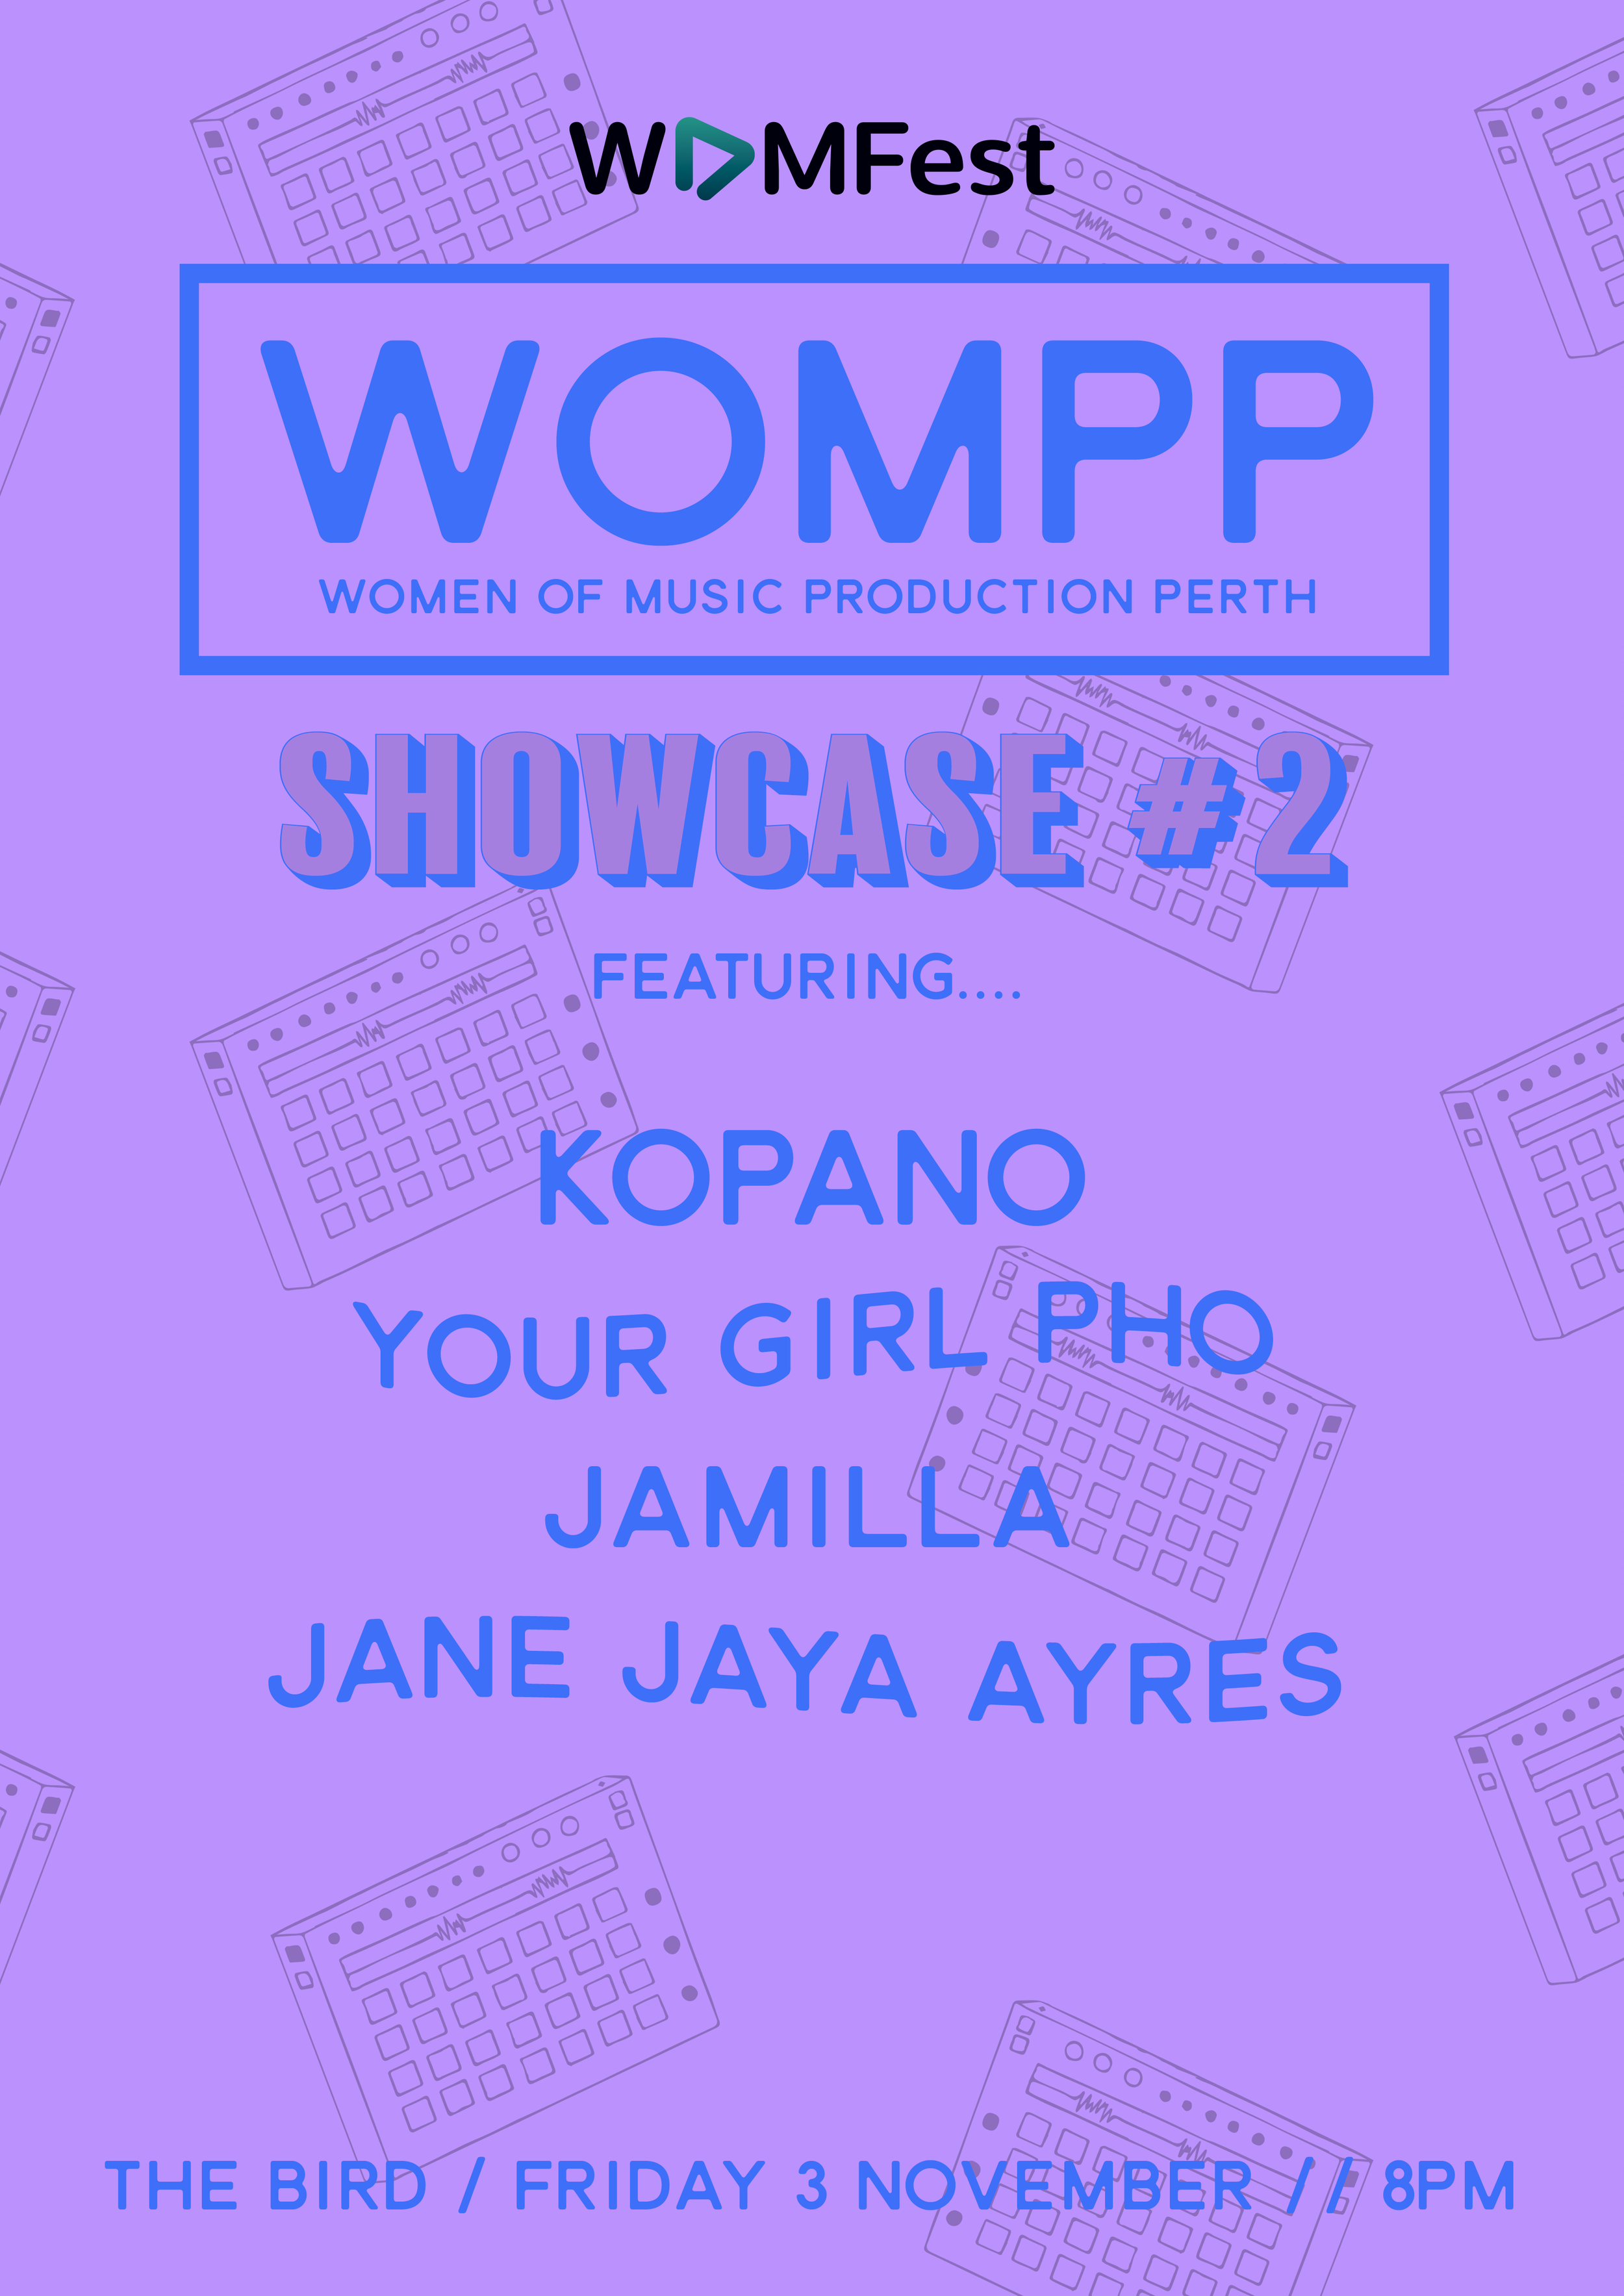 Presented by Women of Music Production Perth